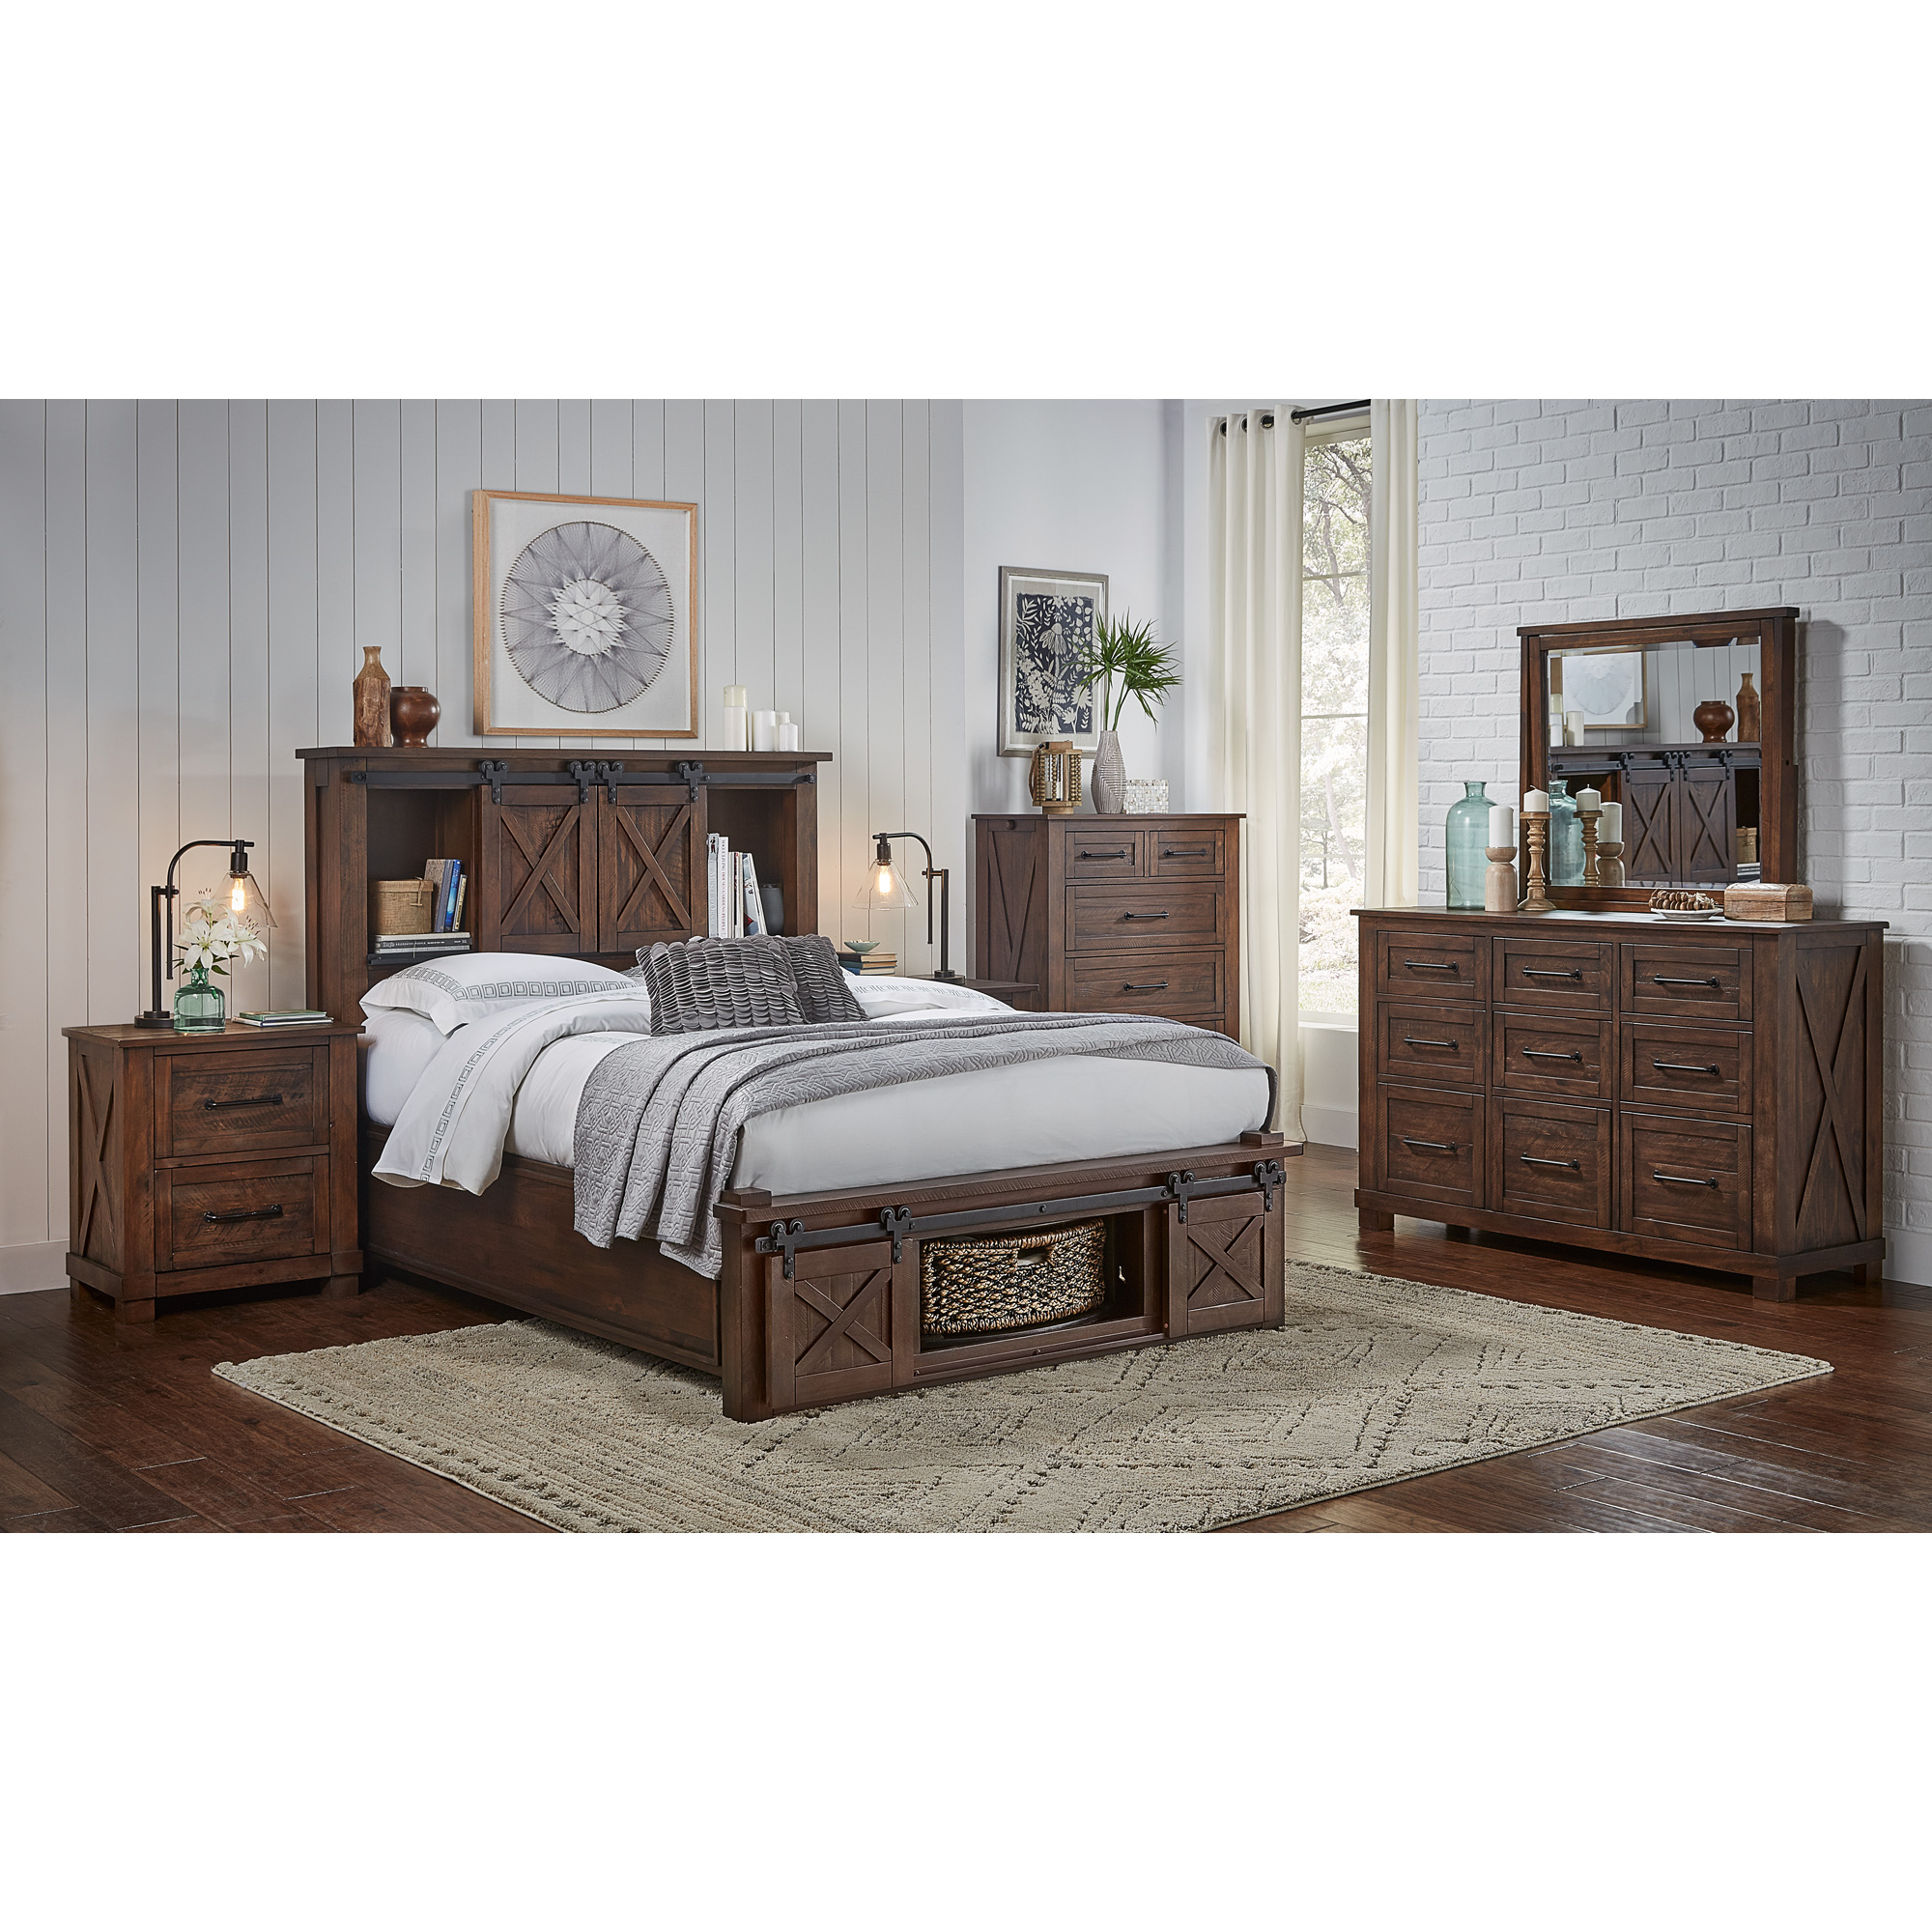 America | Sun Valley Rustic Timber King Rotating Storage 4 Piece Room Group Bedroom Set